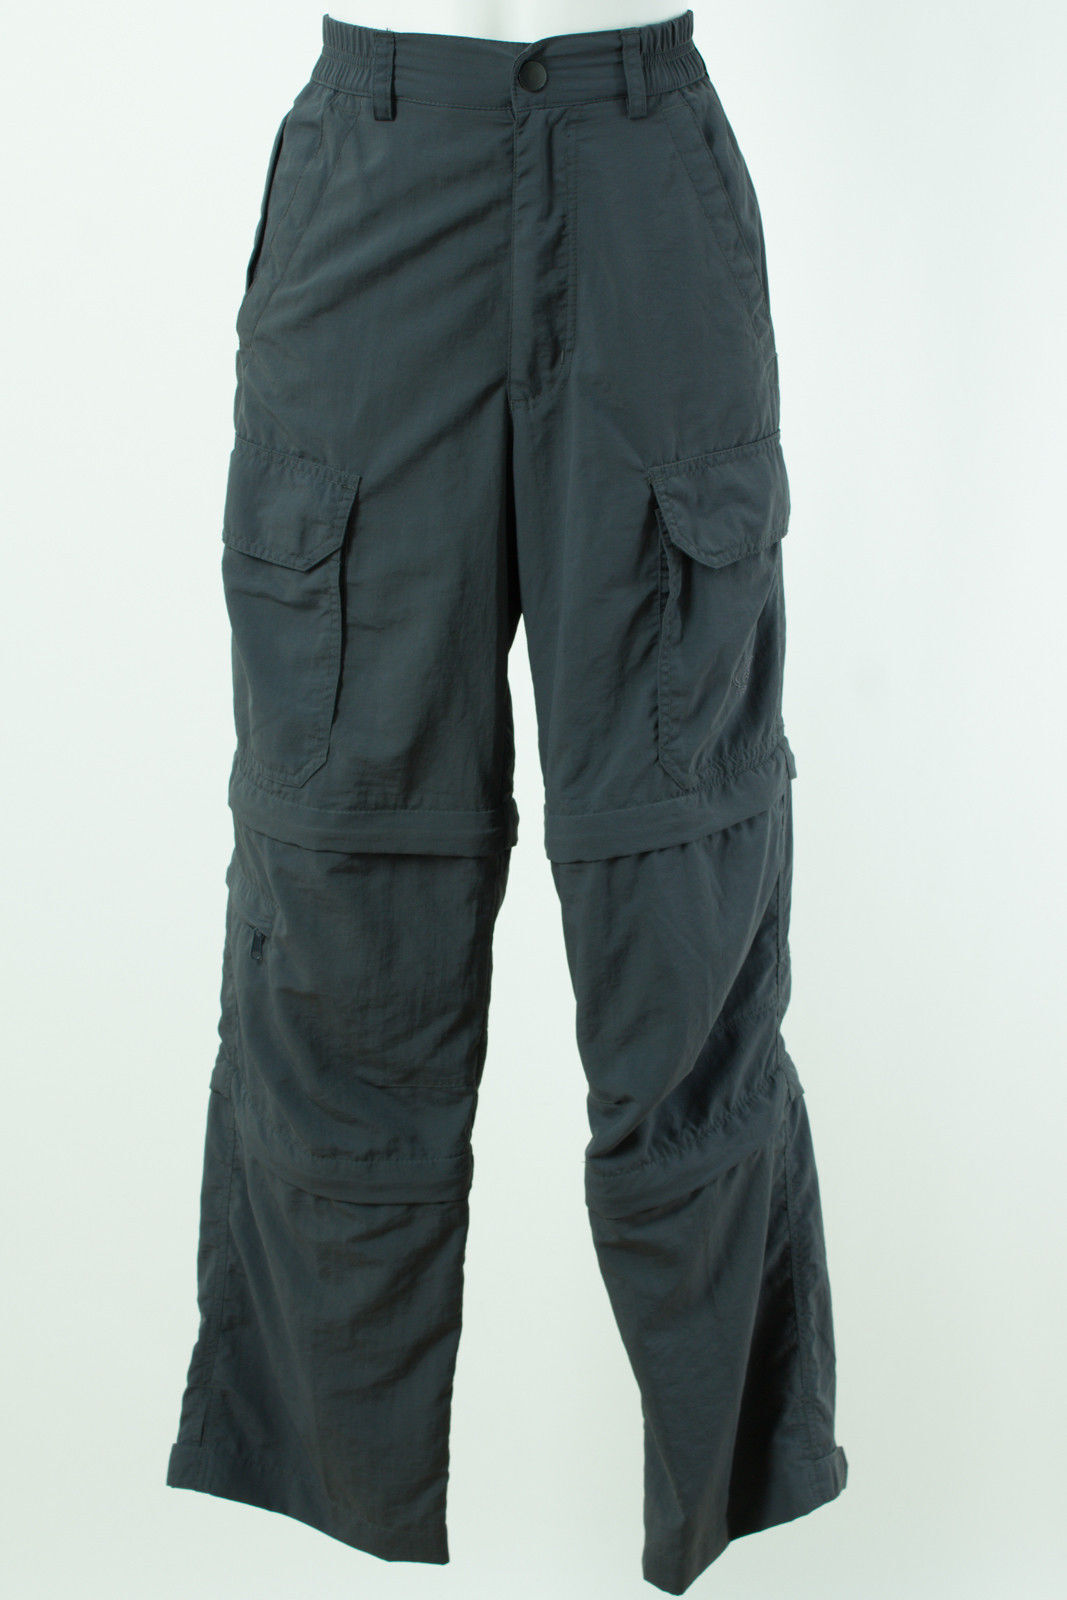 Maul Hose Gr. 40 Zip-Off Outdoor Funktions Cargo-Hose Shorts Pants